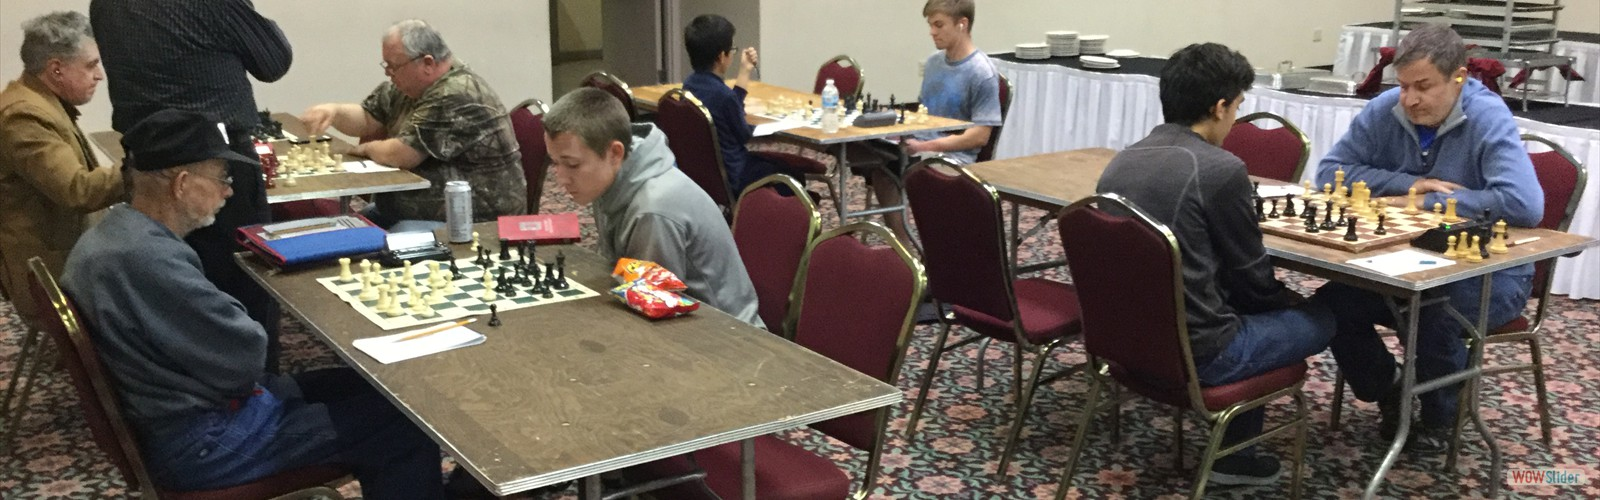 Monday night at the Kingsmen Chess Club